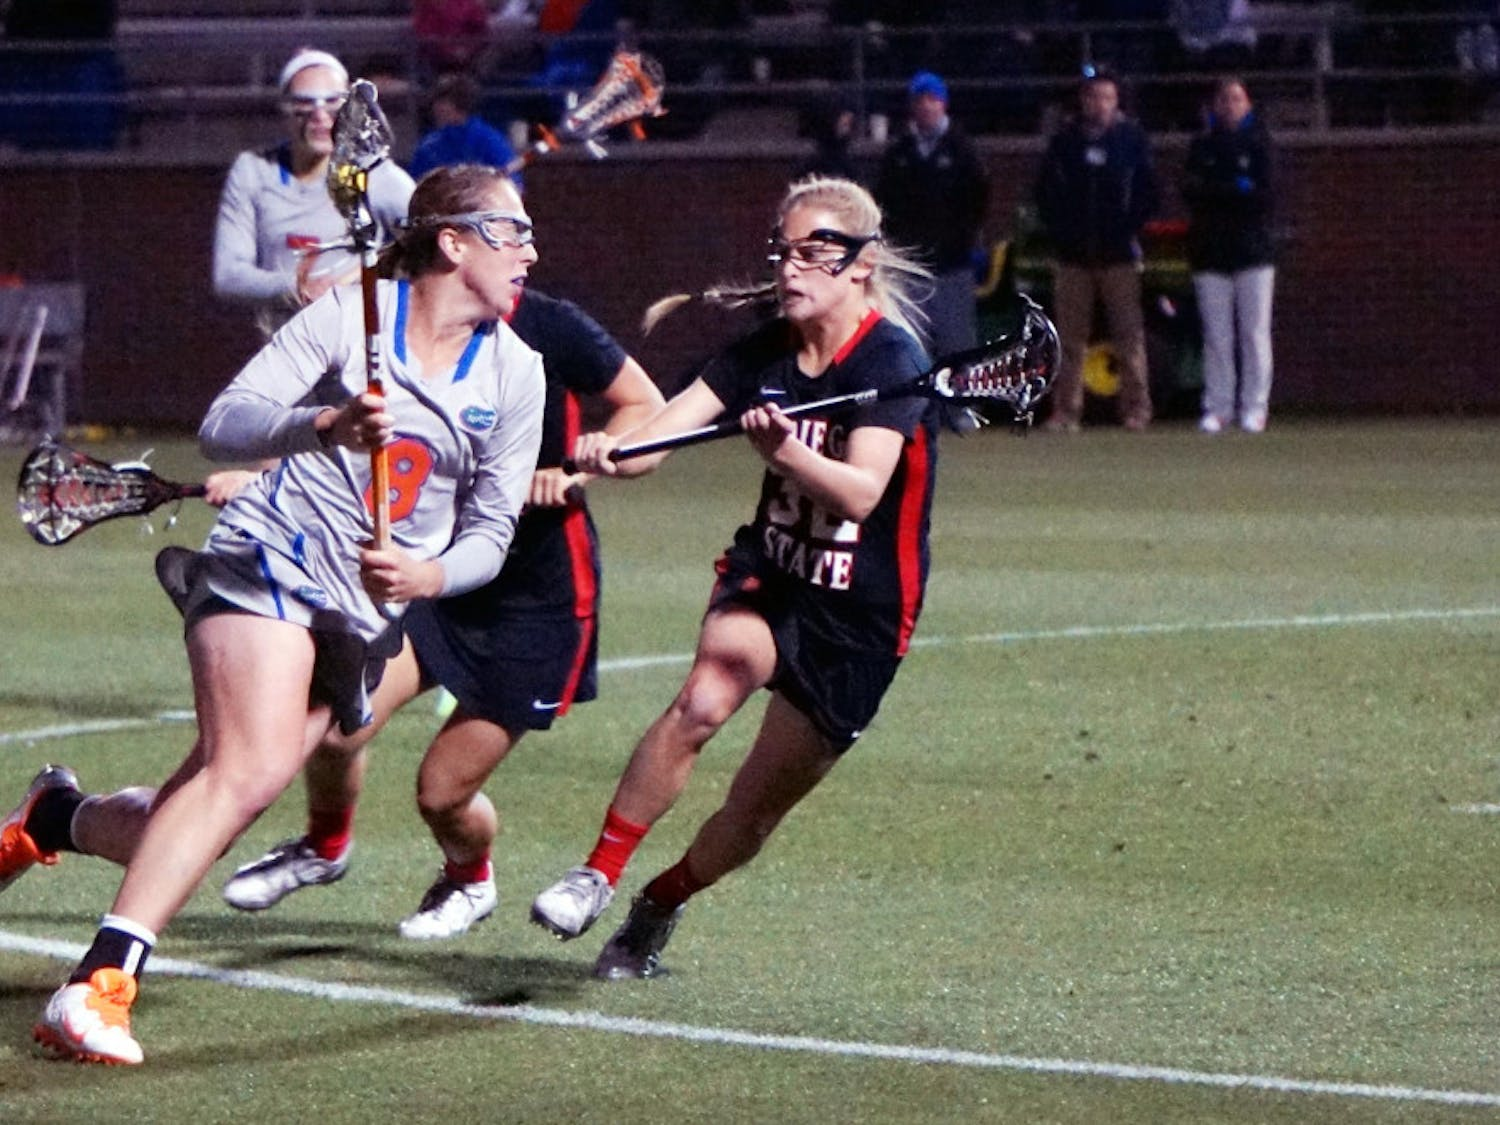 Shannon Gilroy runs toward the net during Florida's win against San Diego State at Donald R. Dizney Stadium.